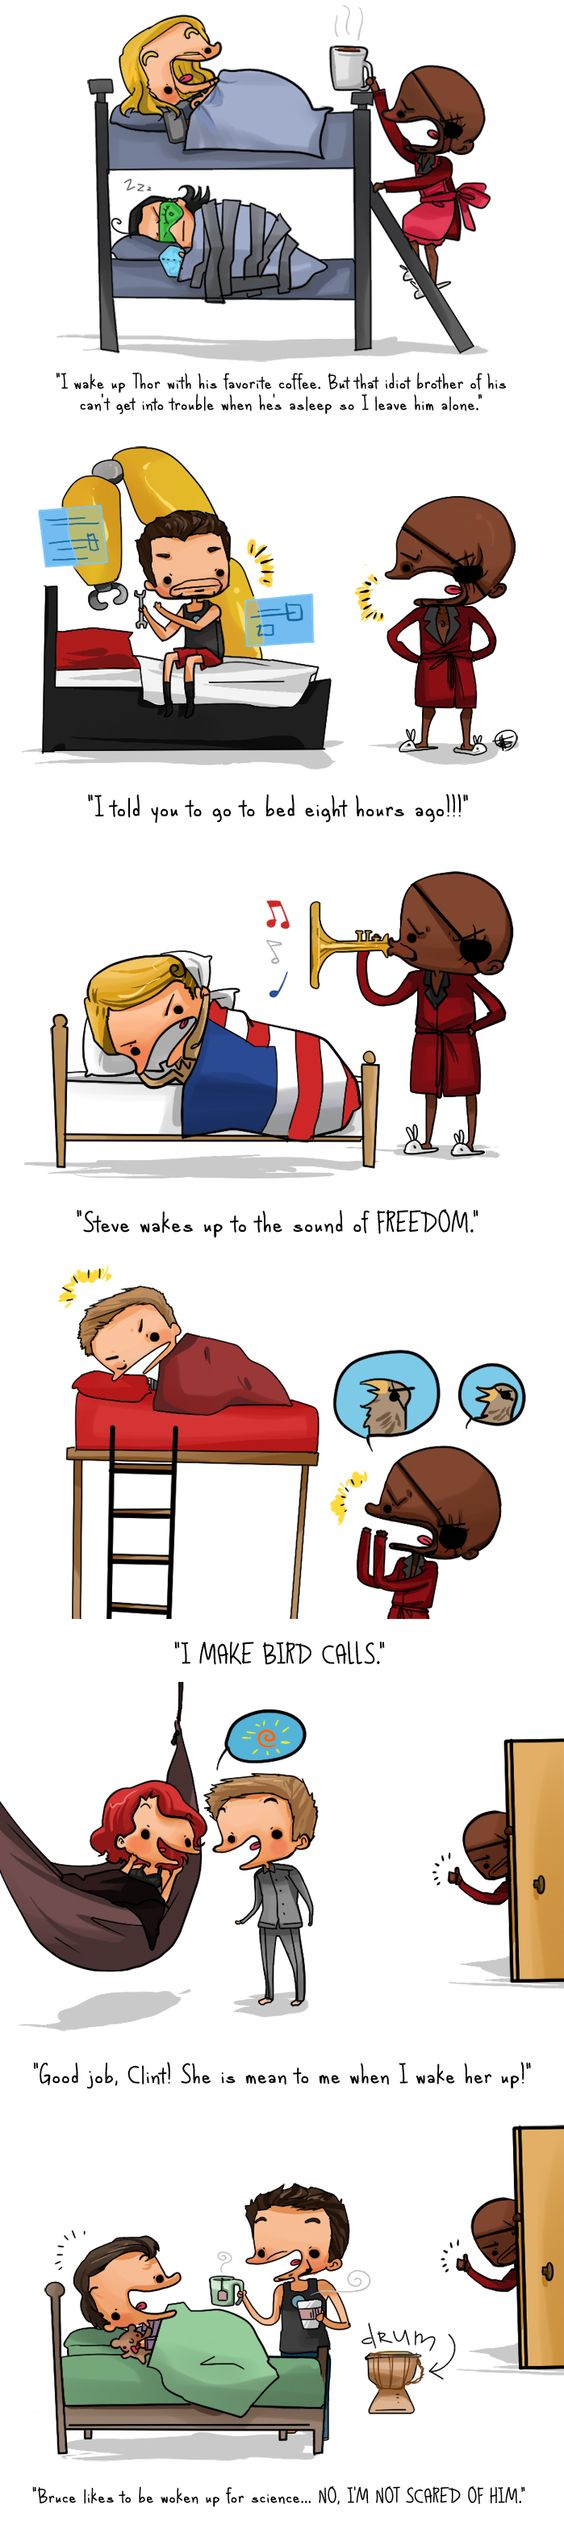 Nick Fury waking up the Avengers, too good for me to comprehend right now